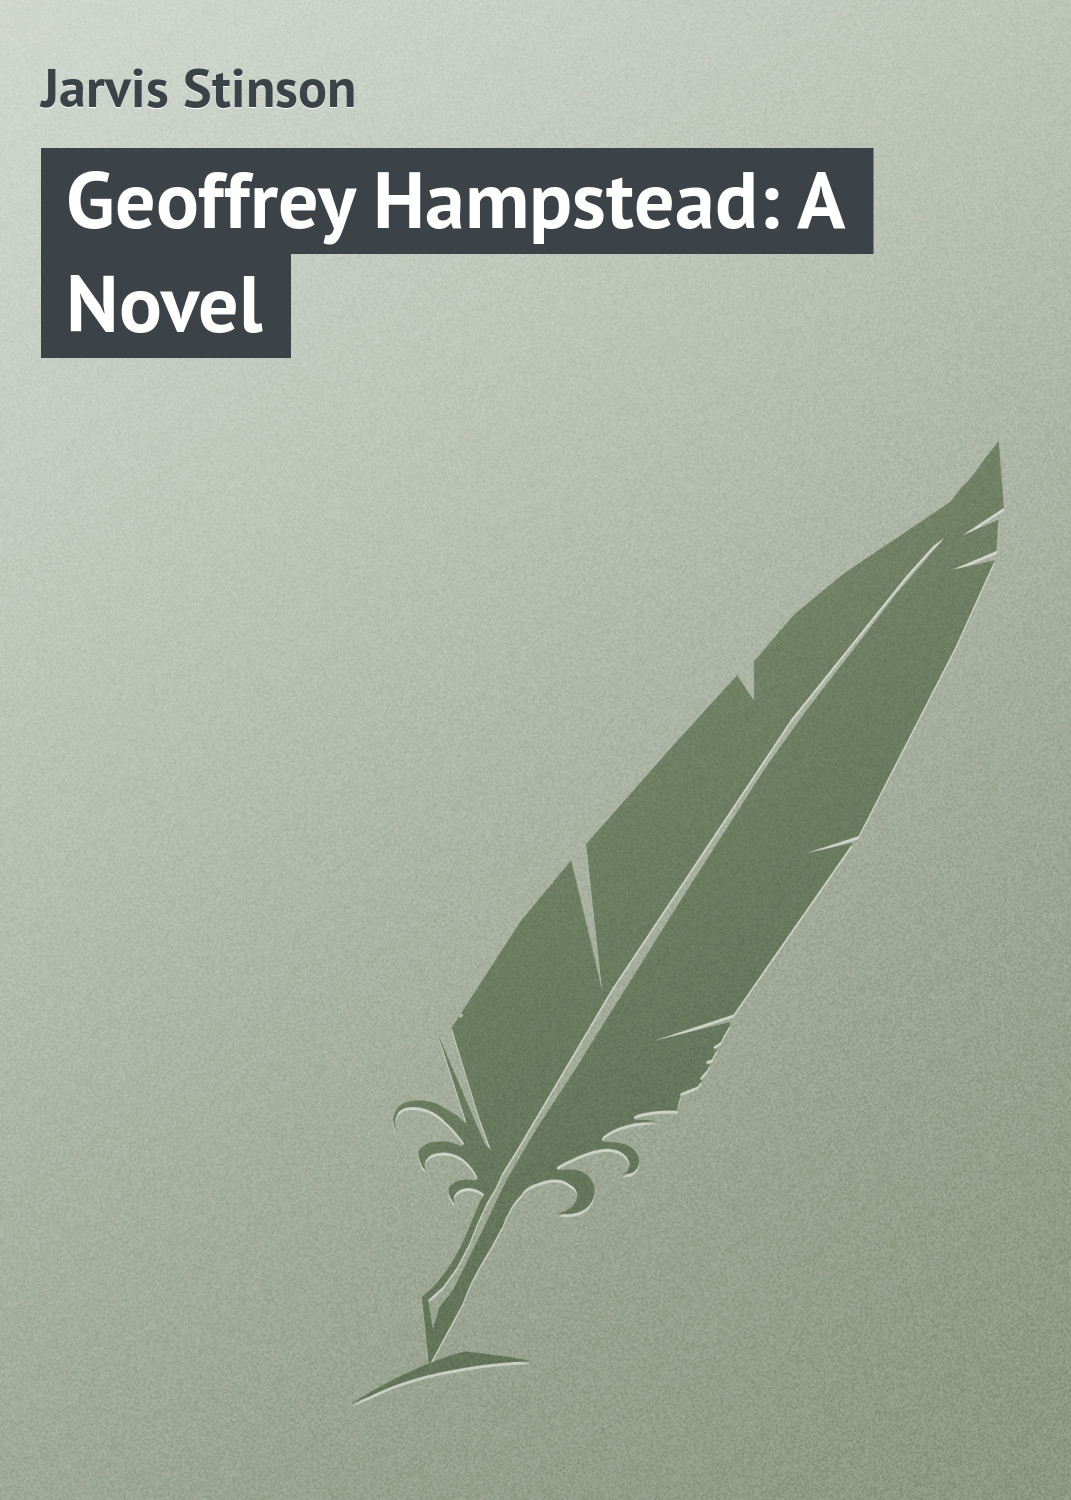 Jarvis Stinson Geoffrey Hampstead: A Novel